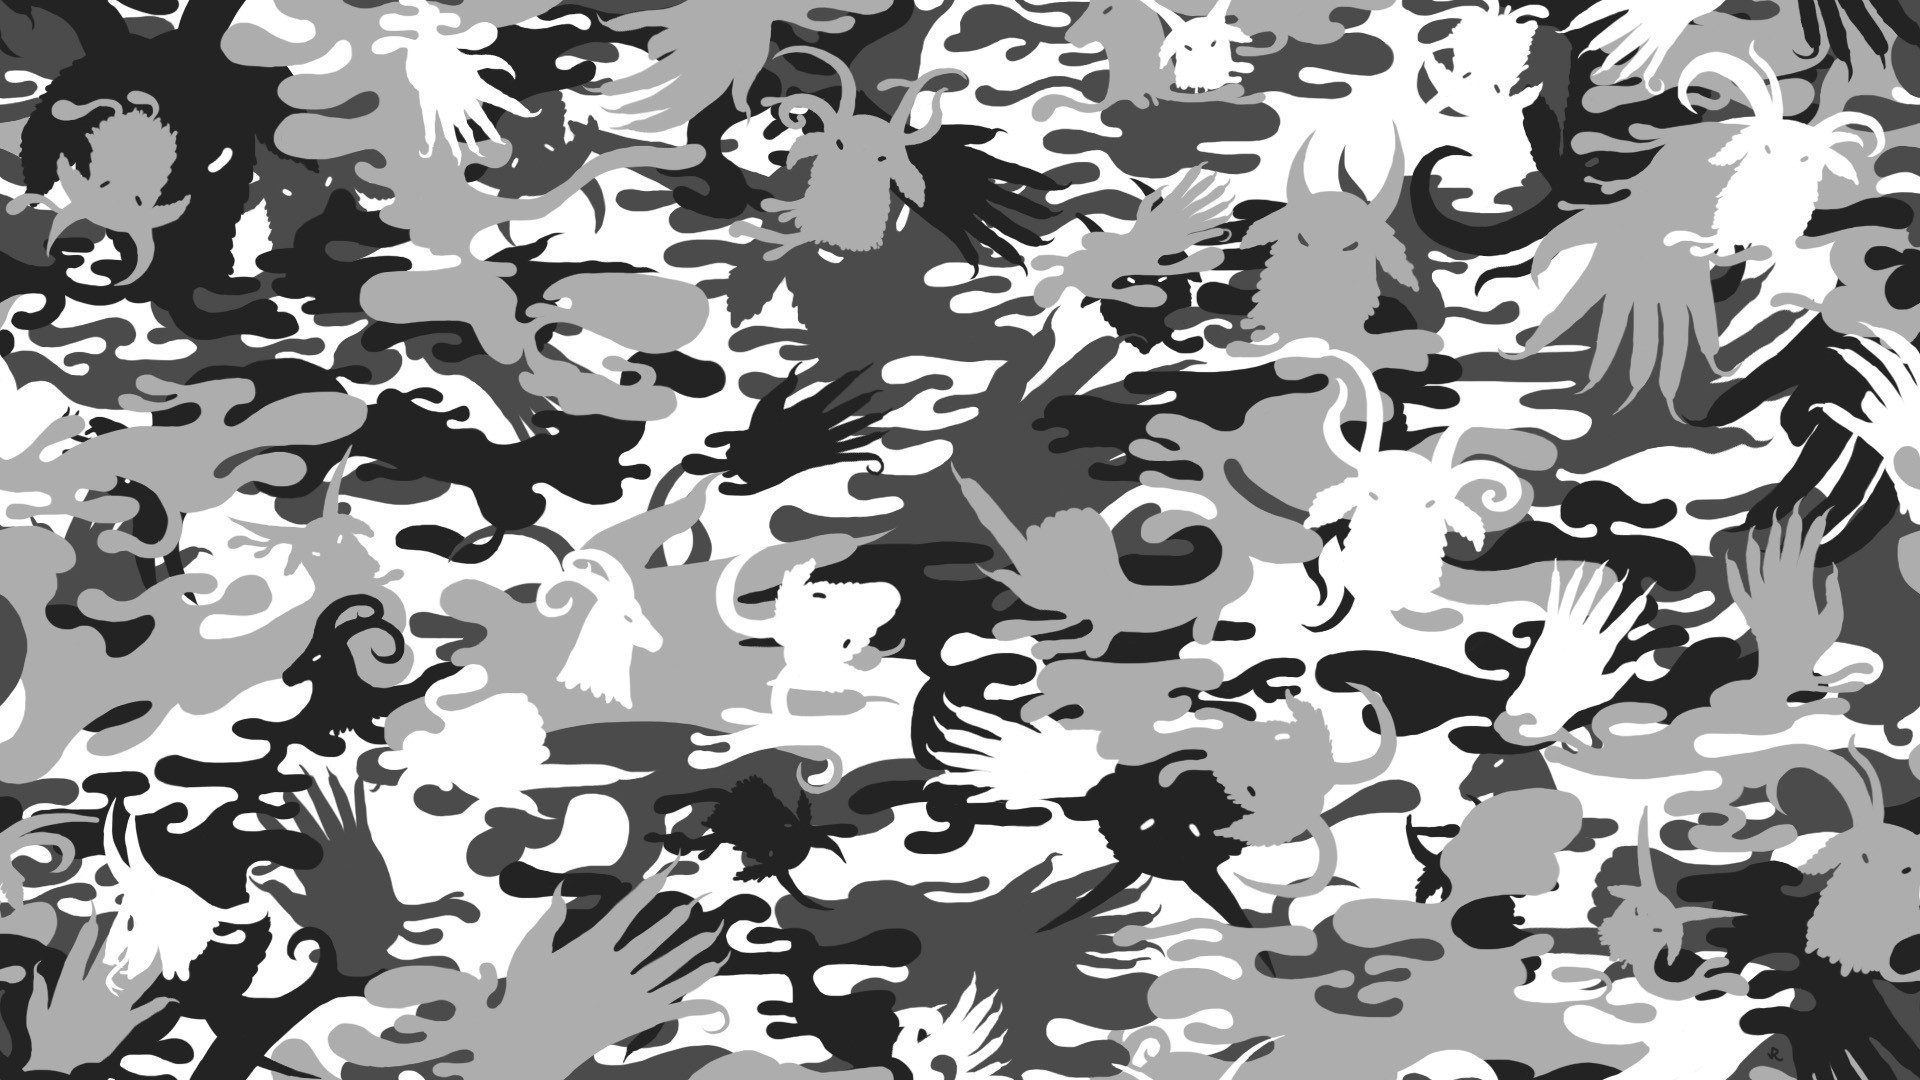 Camouflage Wallpaper 183 ① Download Free Full Hd Wallpapers